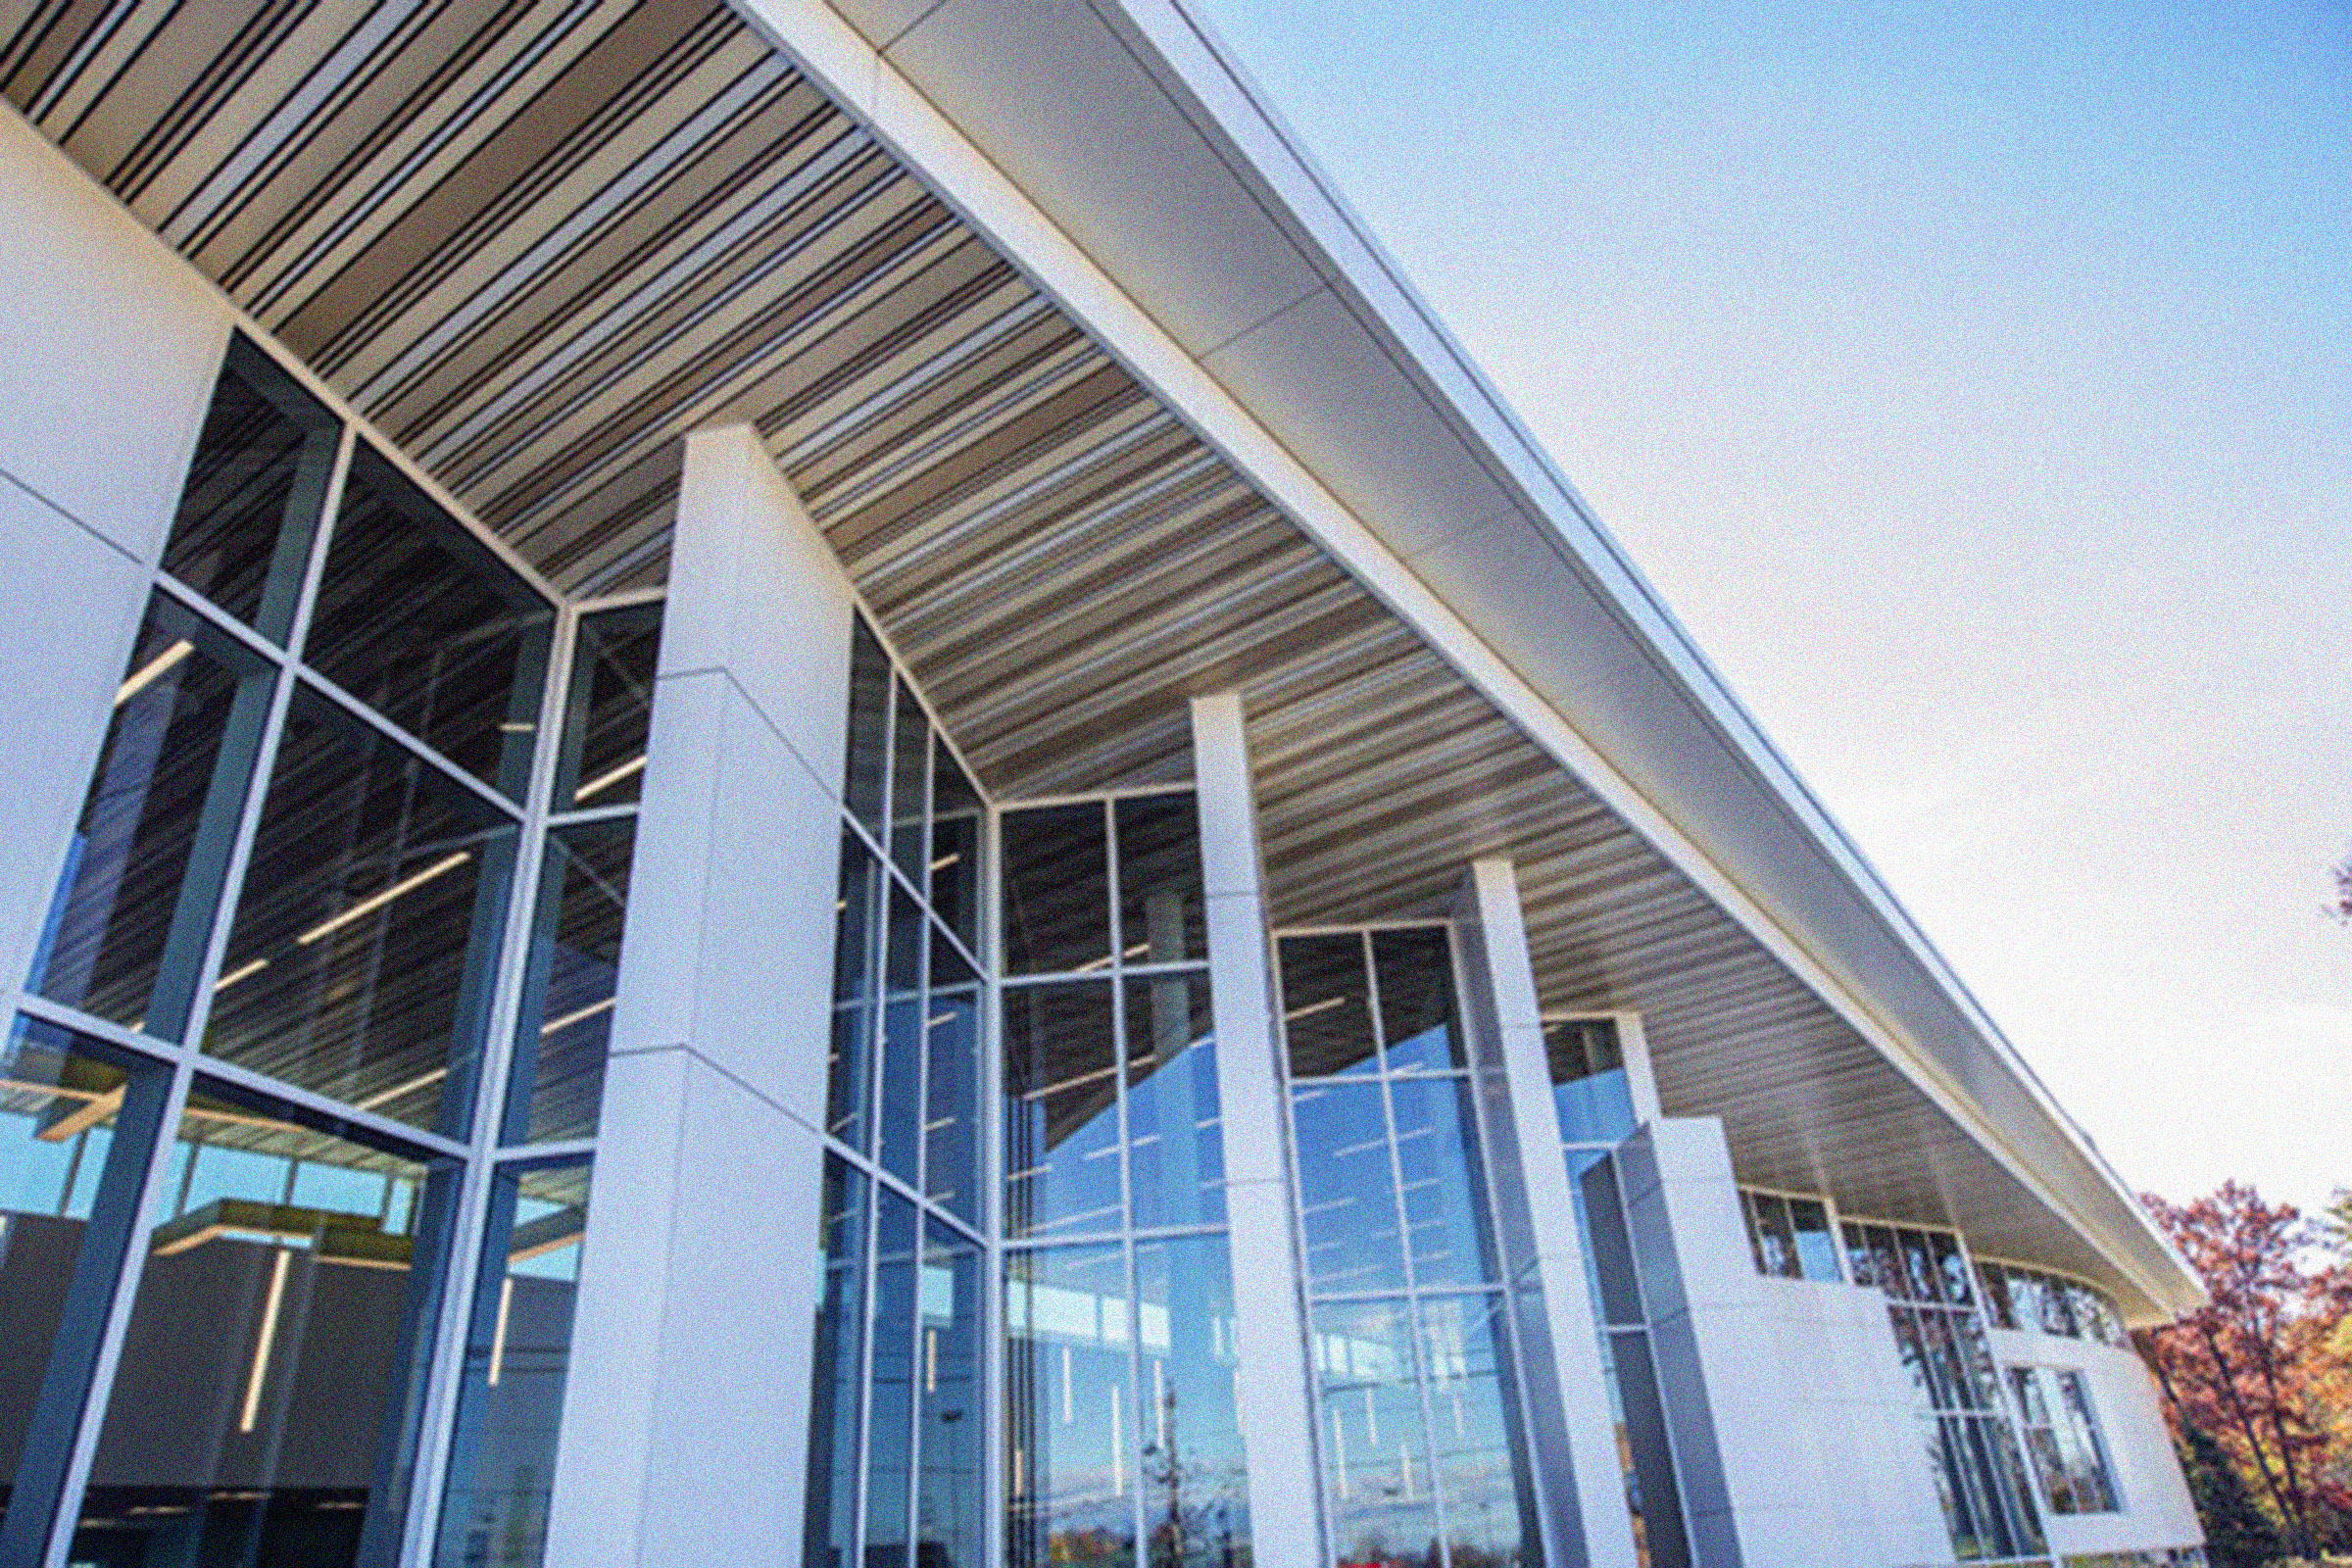 White aluminum composite construction featured on the exterior of a library in Ohio. ACM highlights and accents floor to ceiling windows.